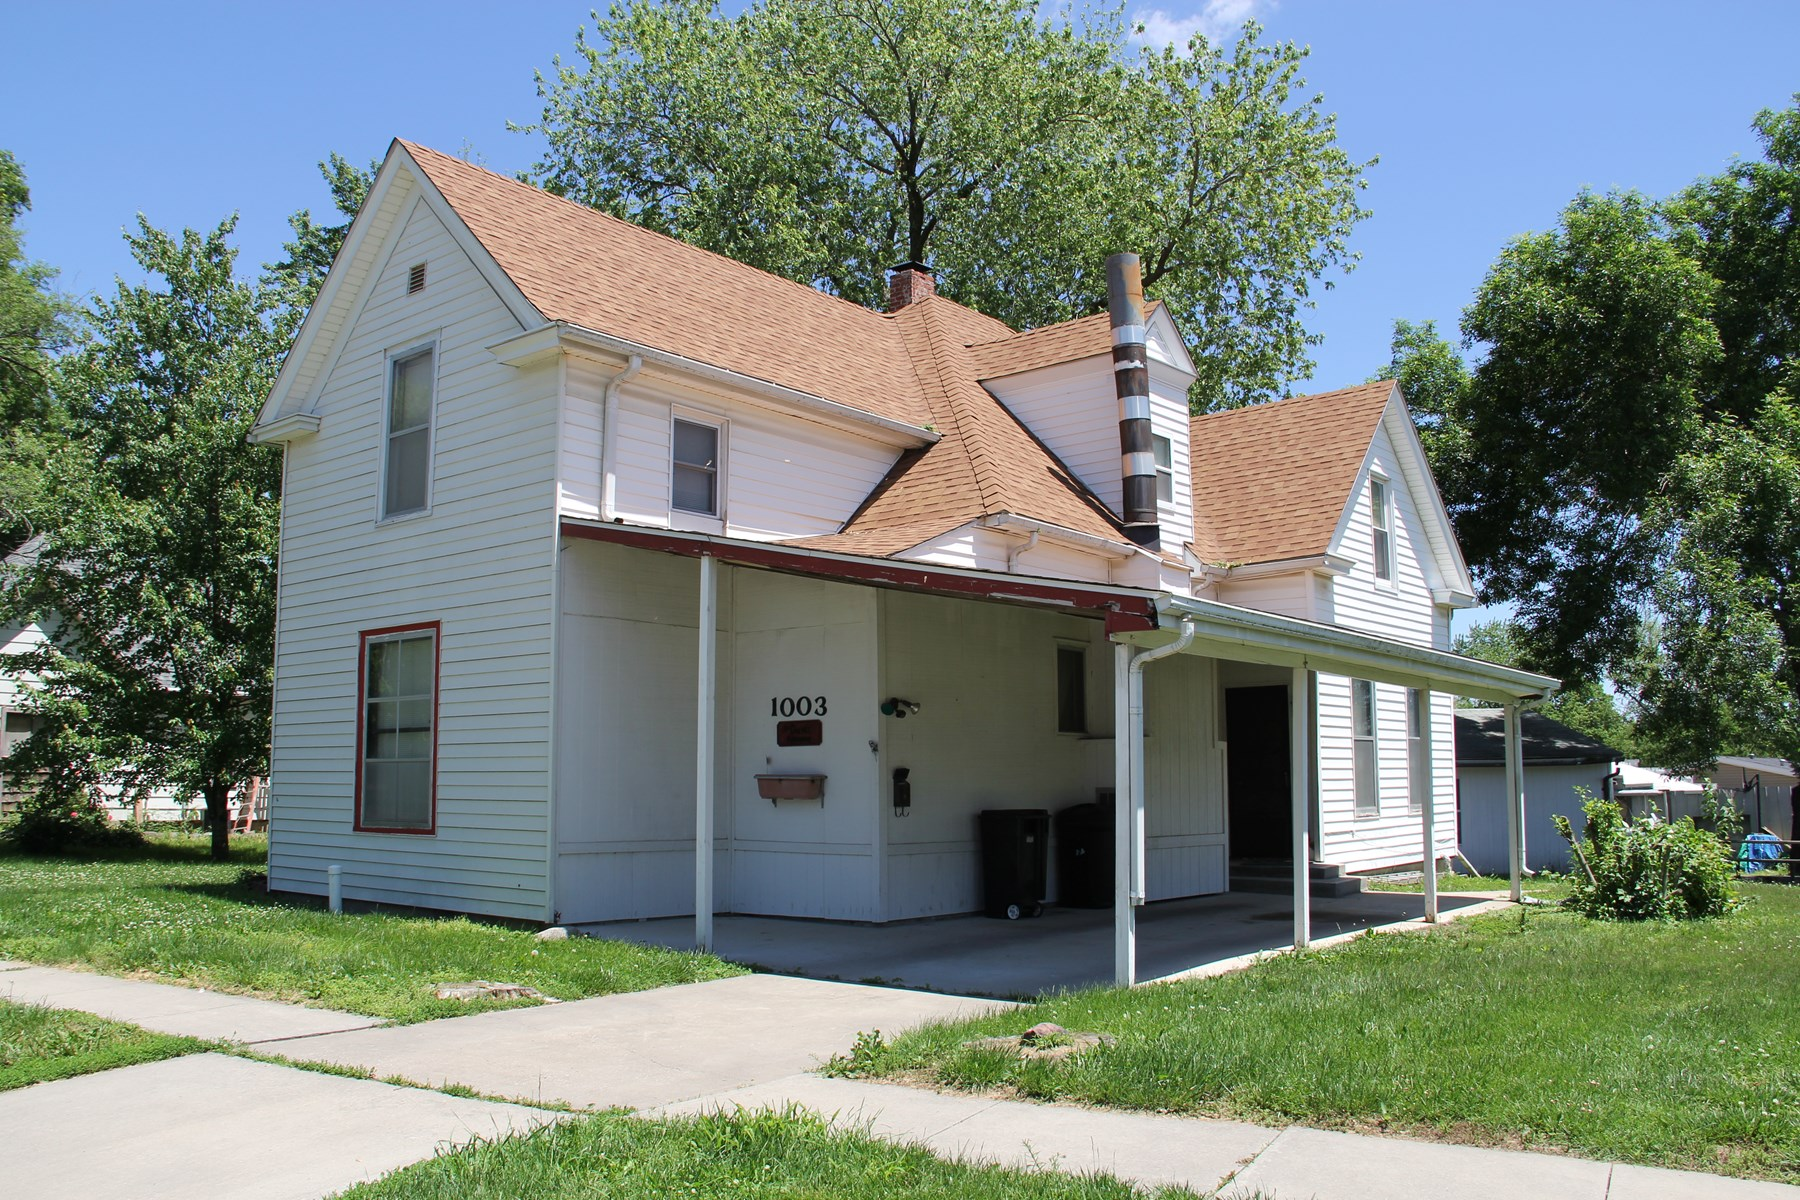 Four Bedroom, Two Bath Historic Home in Chillicothe, MO